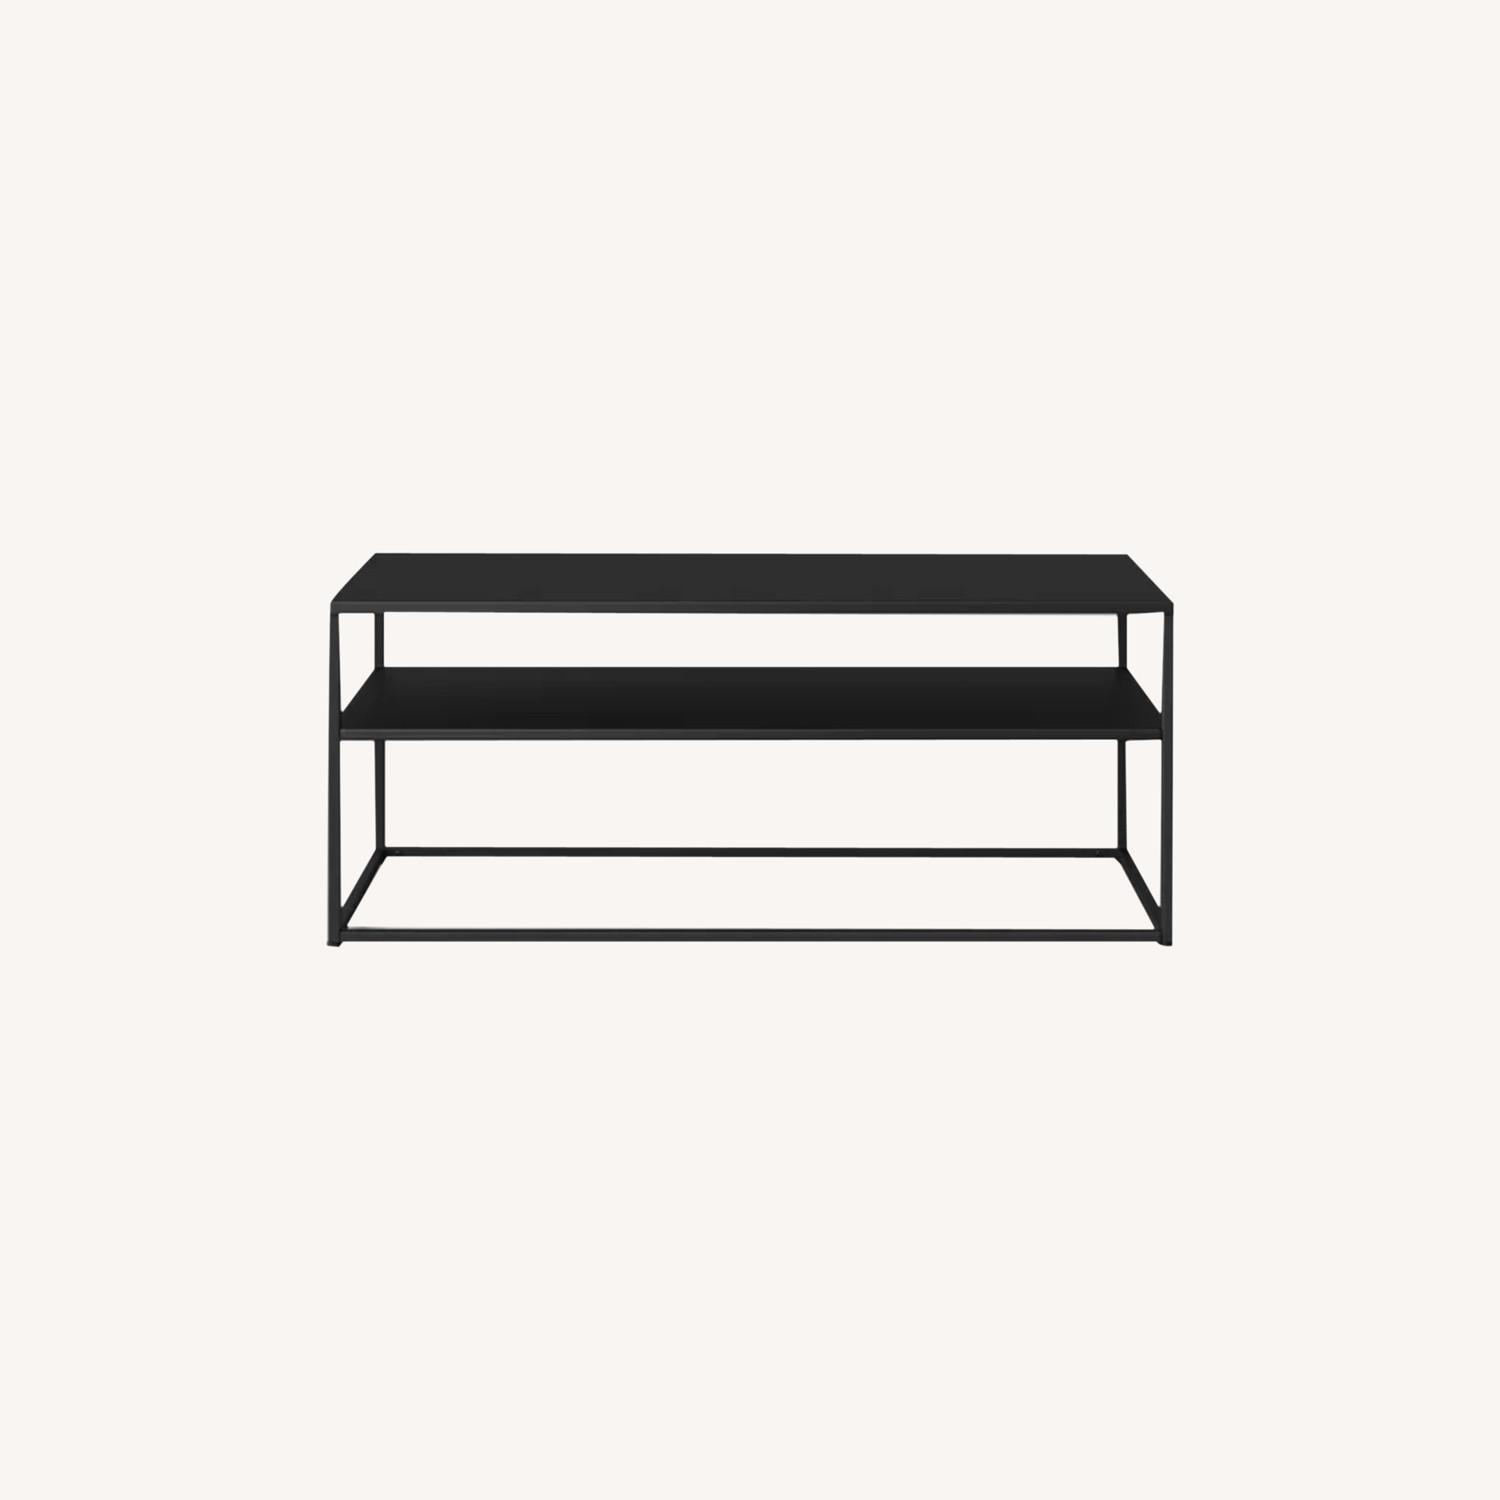 Target Glasgow Metal Coffee Table Black - Project 62 - image-0